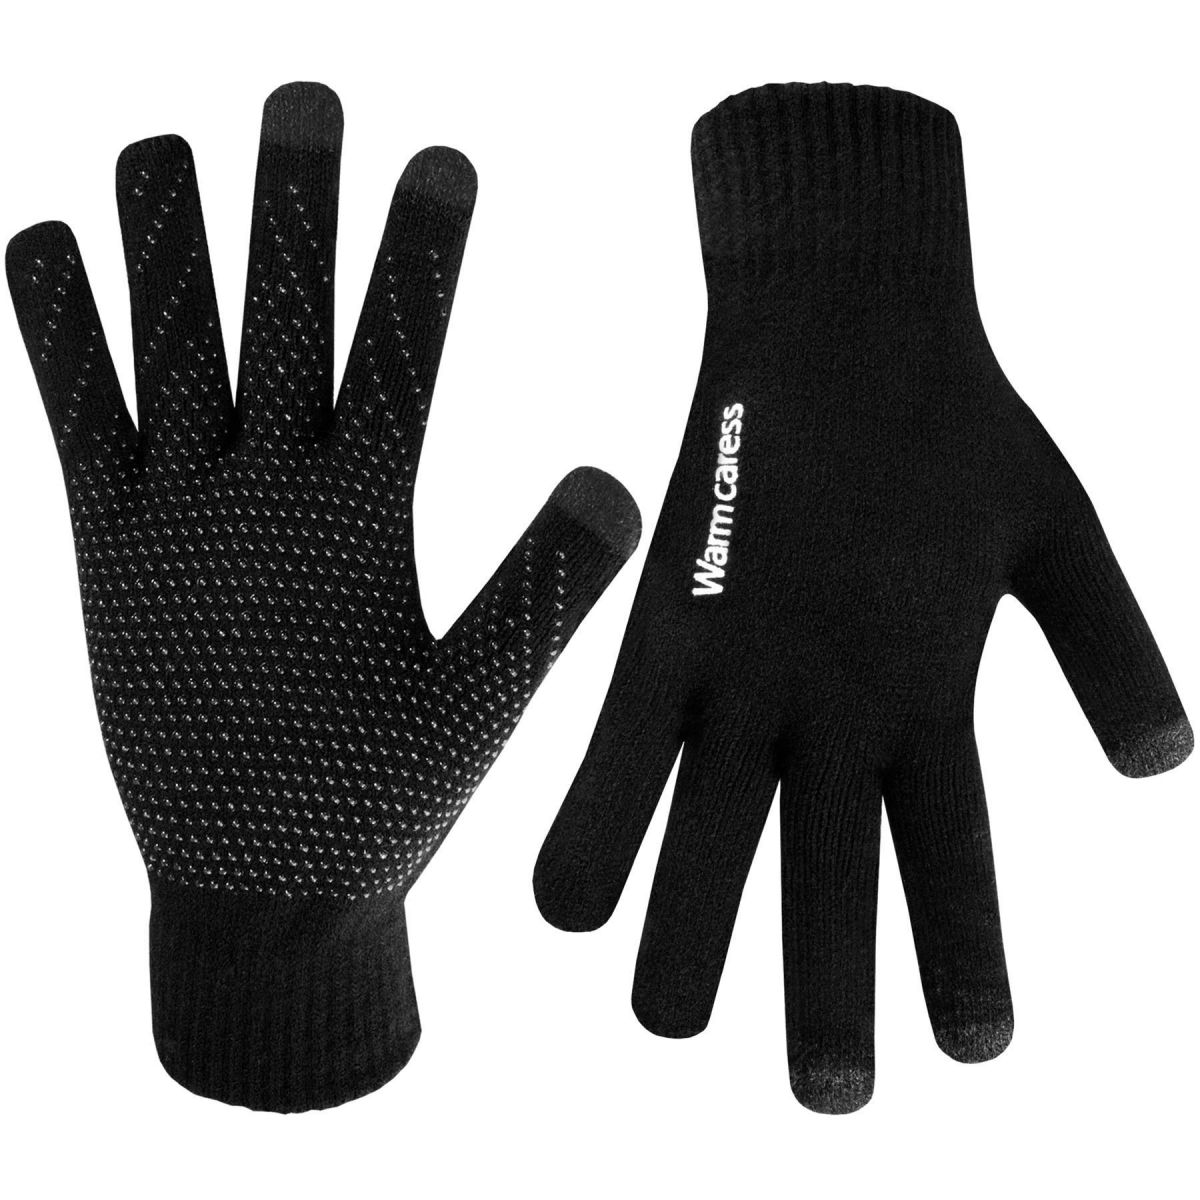 Accessories |  Womens Black Gripper Thermal Gloves